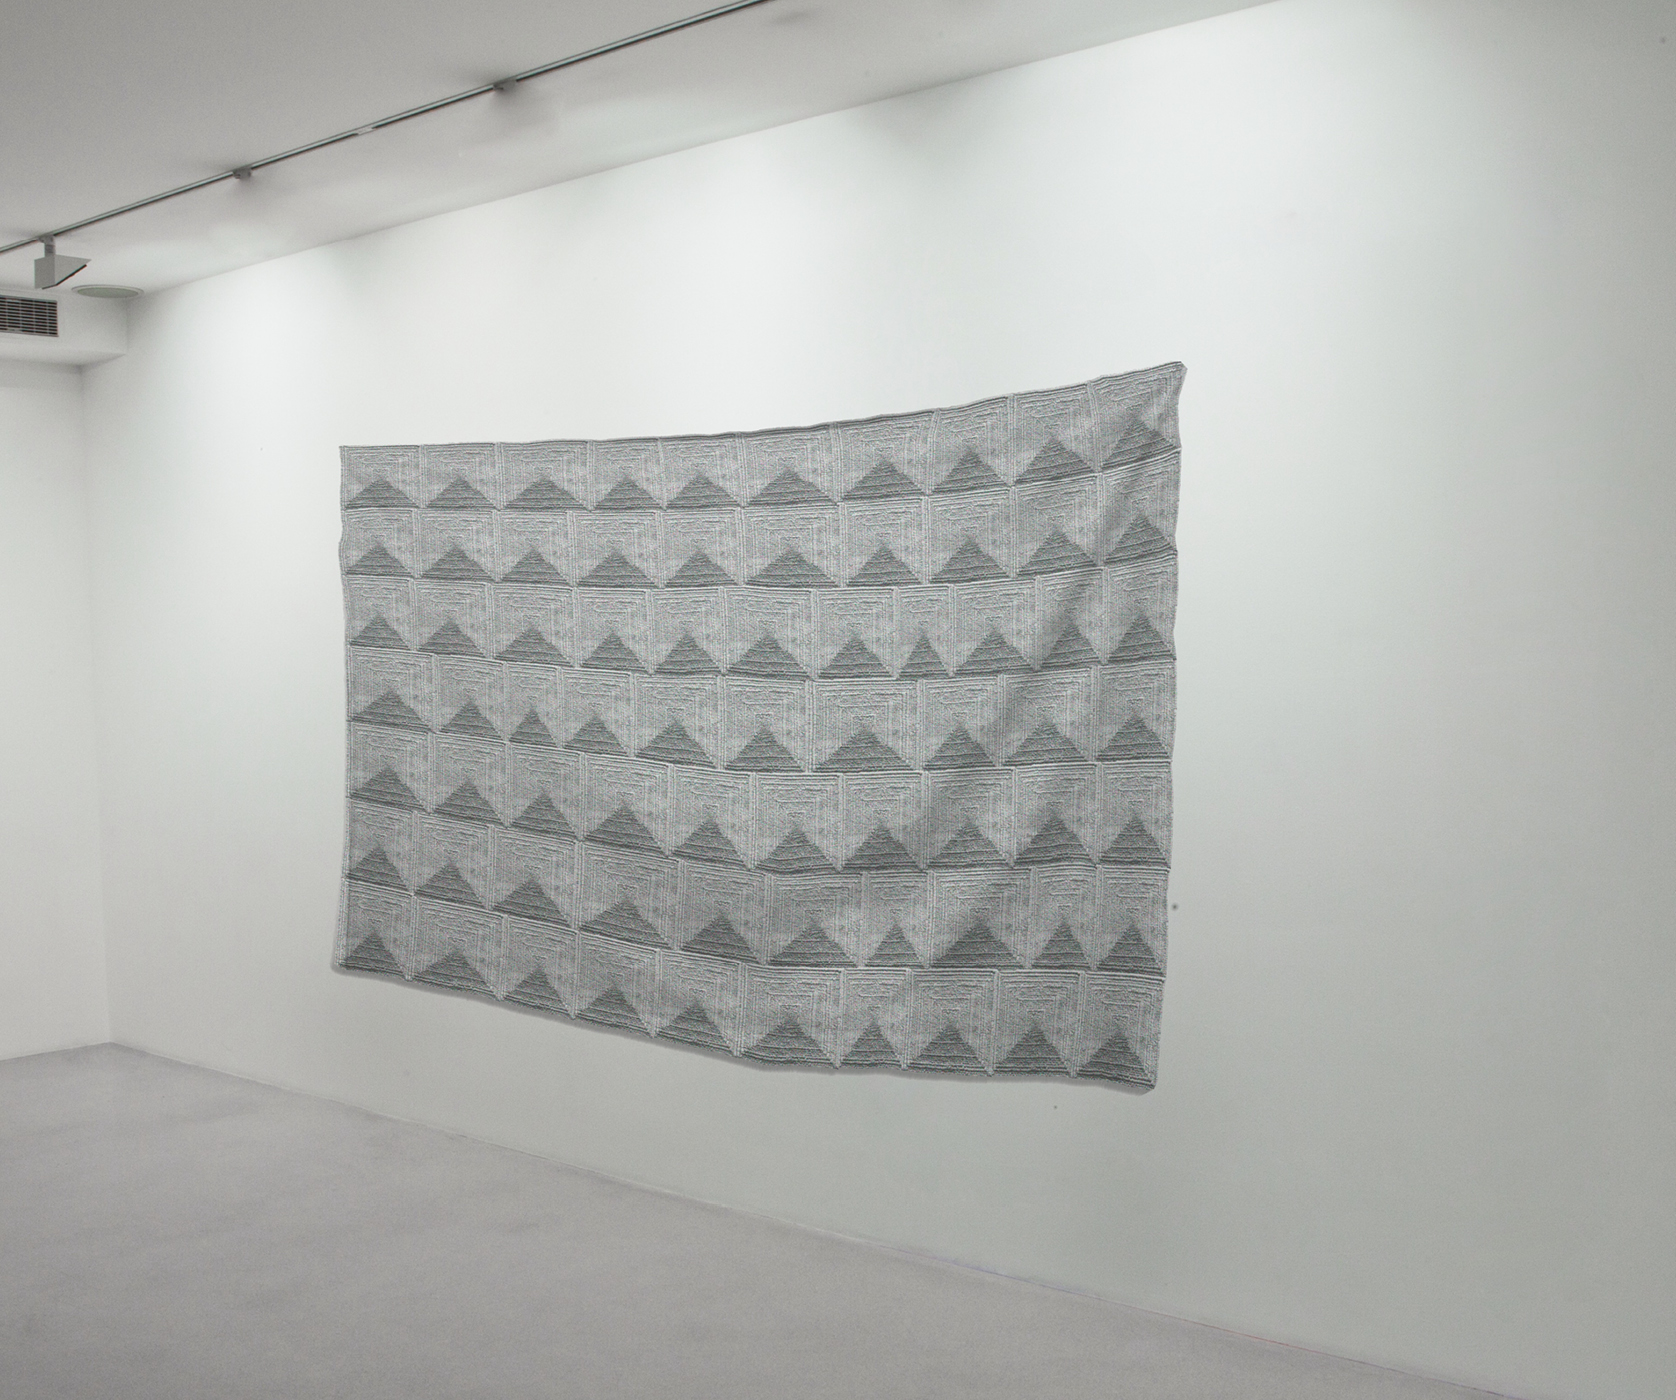 Screen Shot Tapestry ( maquette ), 2016